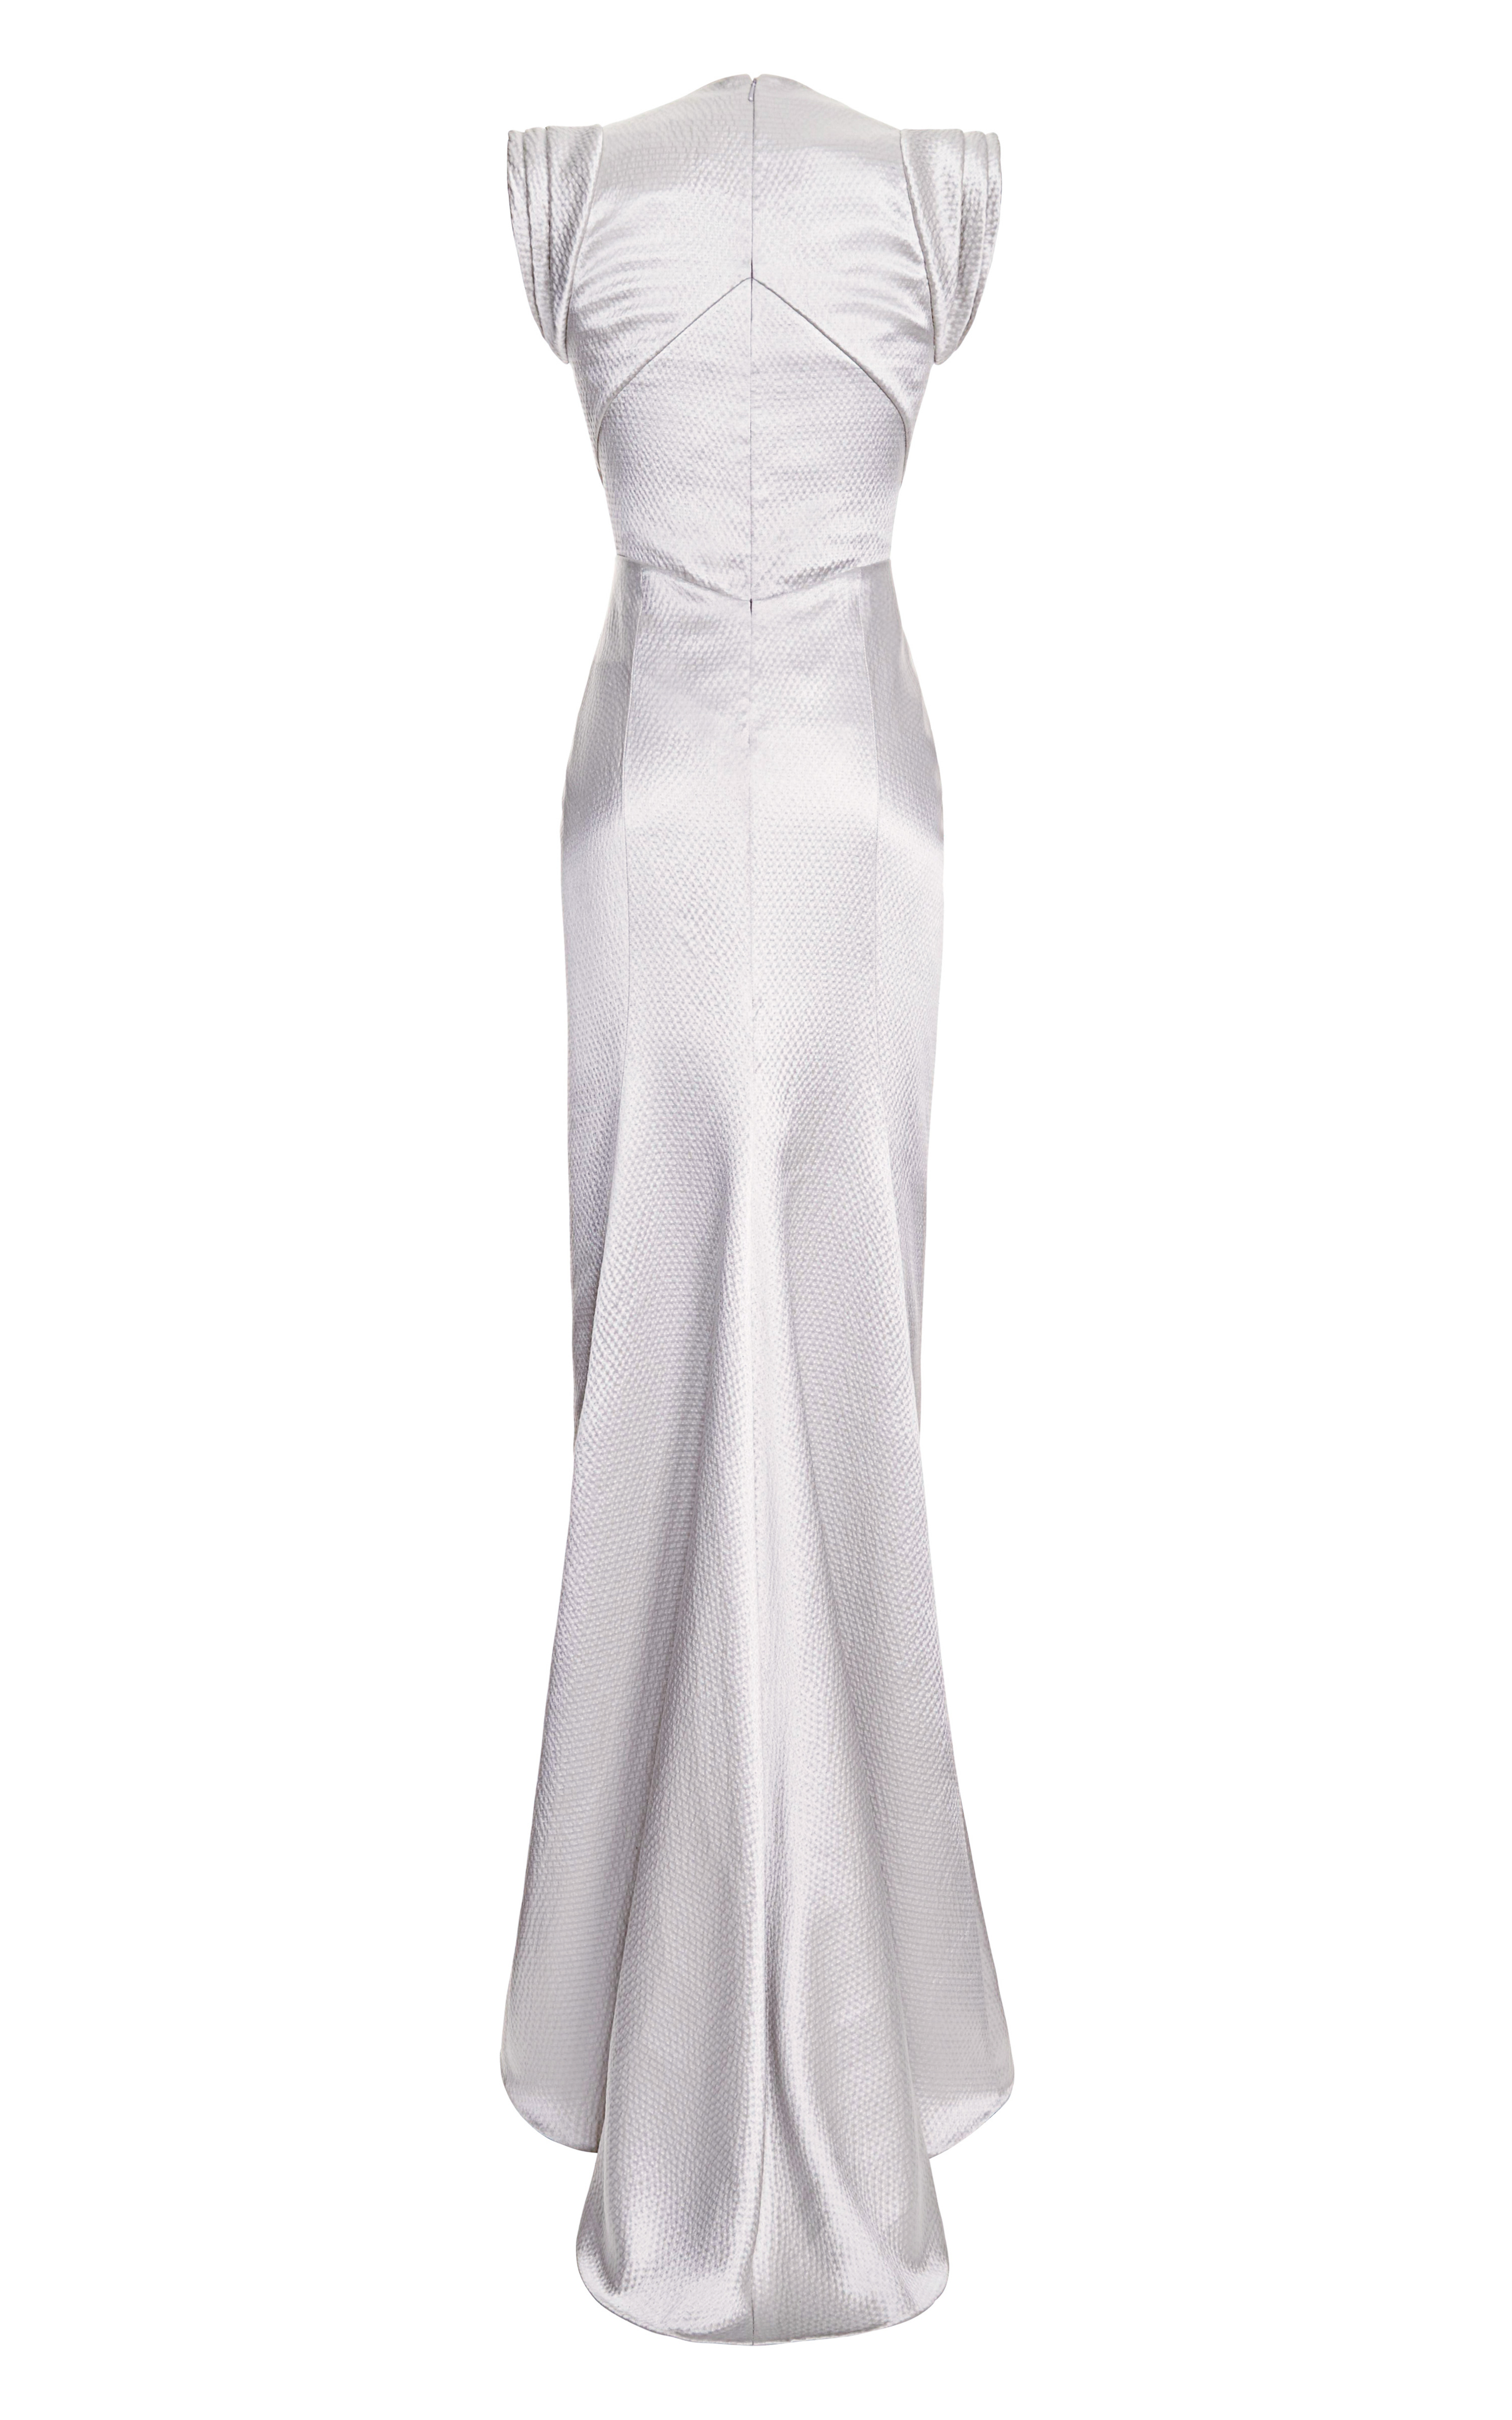 Lyst - J. Mendel Sleeveless Vneck Gown with Pleated Skirt in Gray